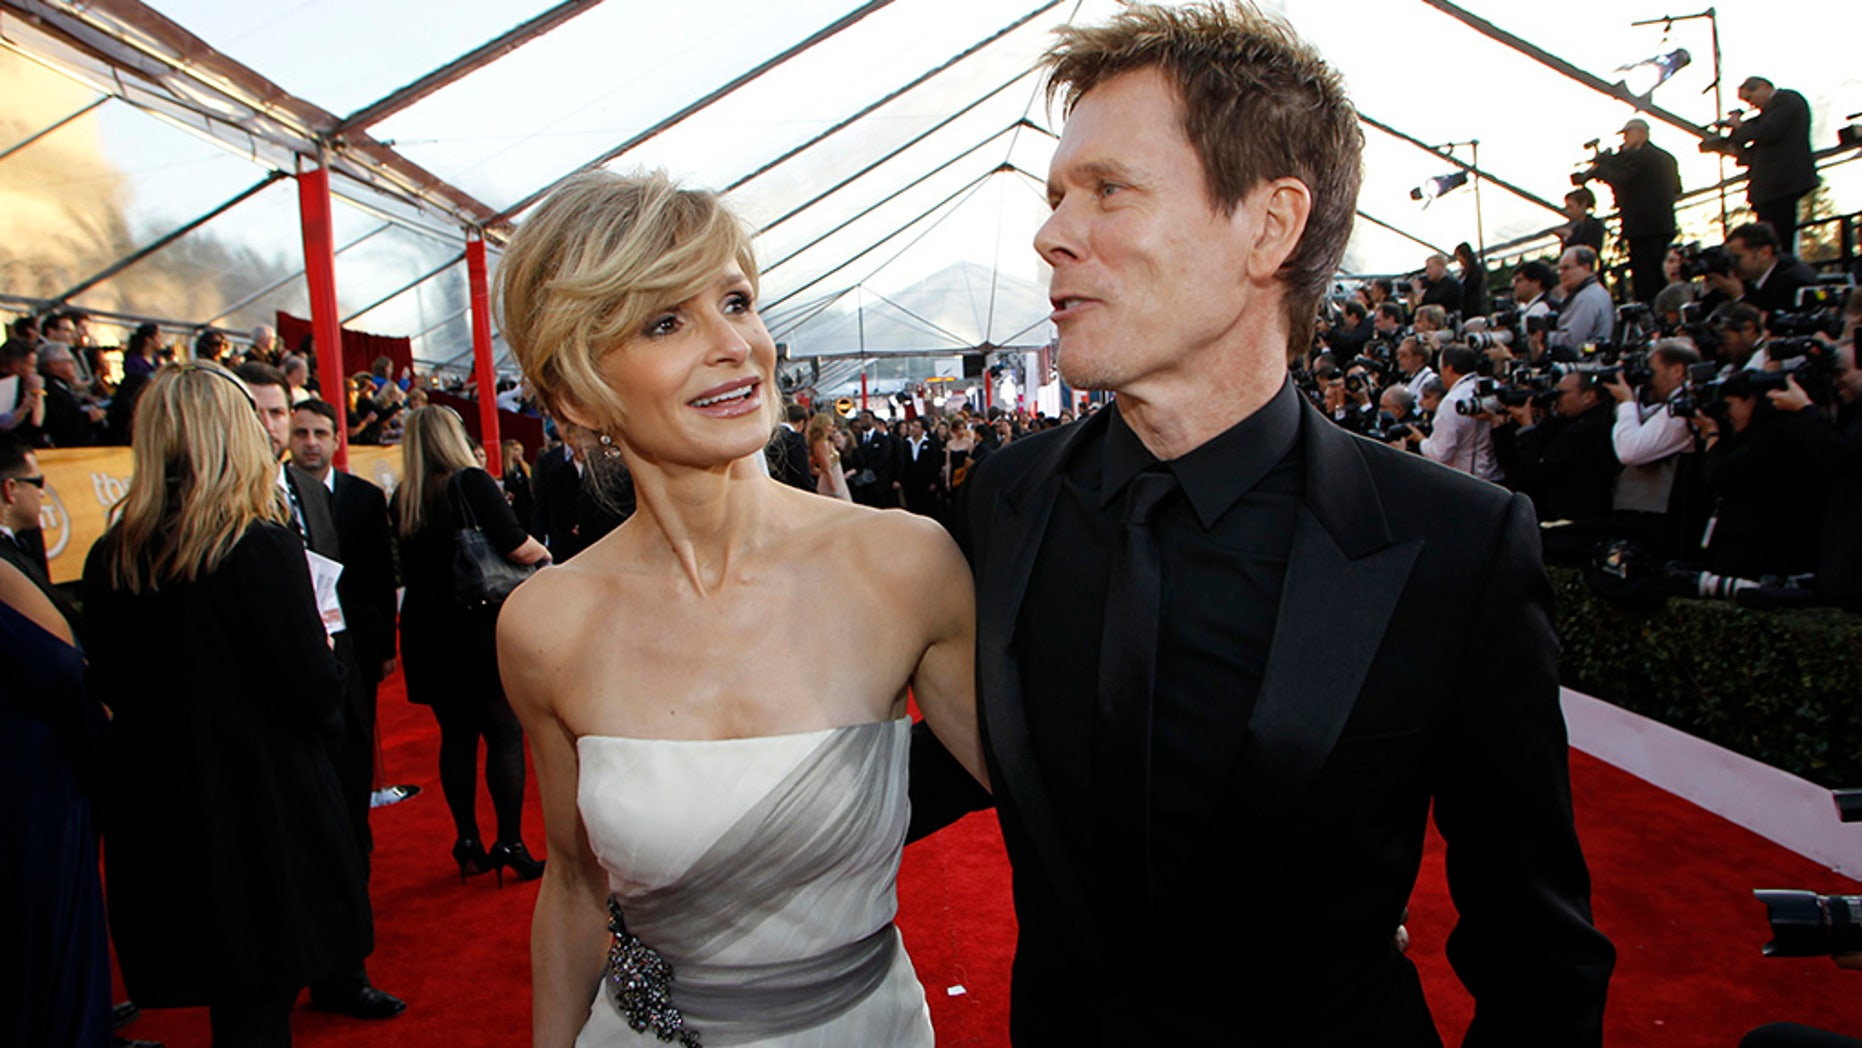 Kevin Bacon and Kyra Sedgwick celebrate their 30th wedding anniversary with a Bee Gees duet.